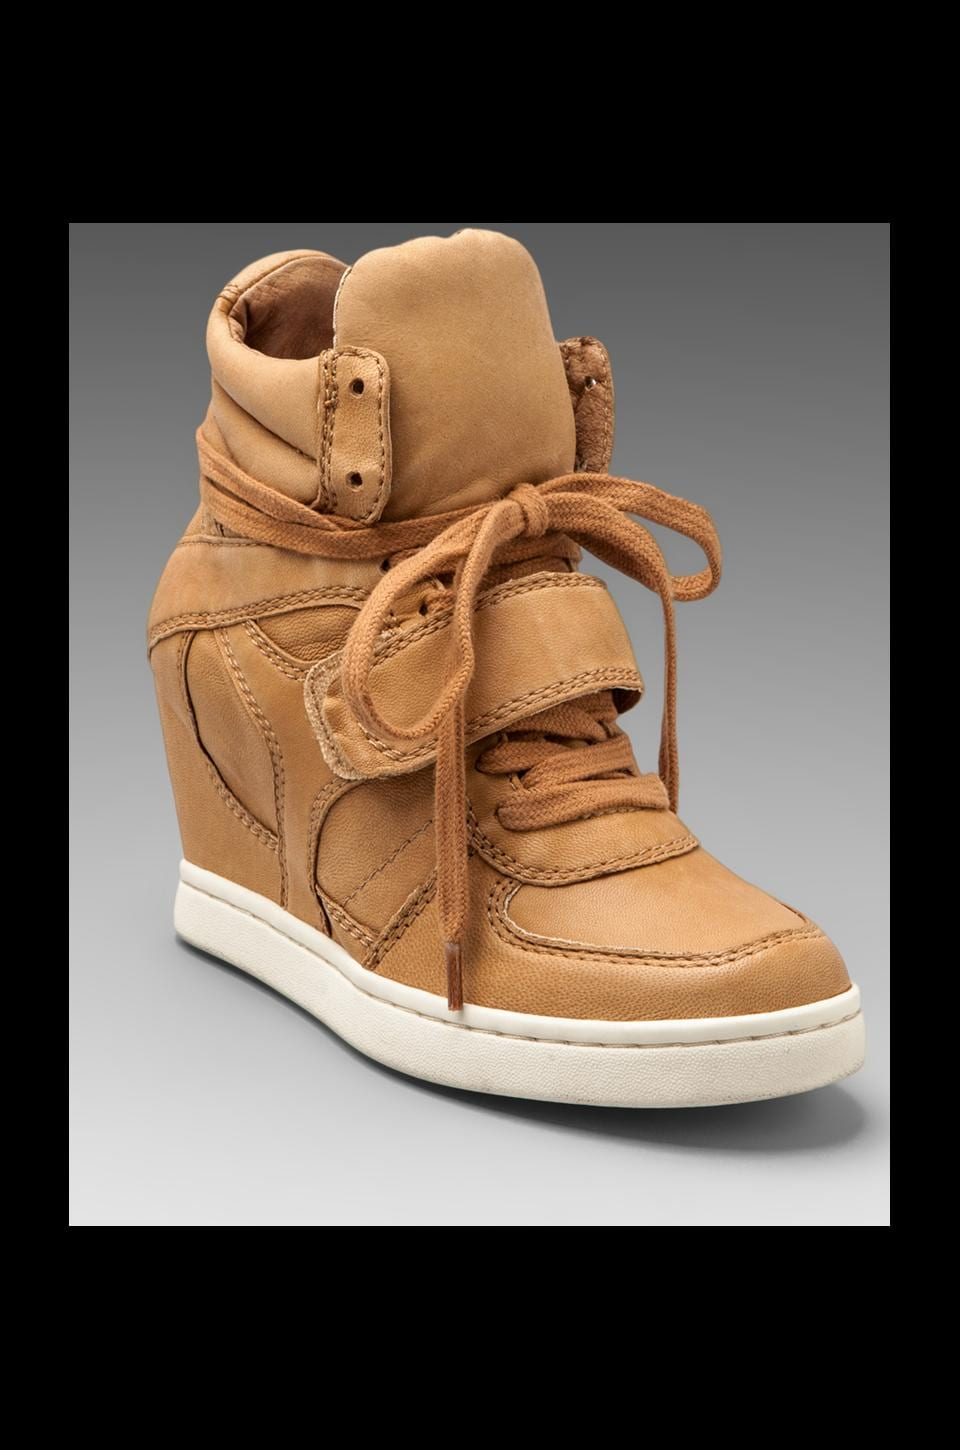 Ash Cool Ter Wedge Sneaker in Nude